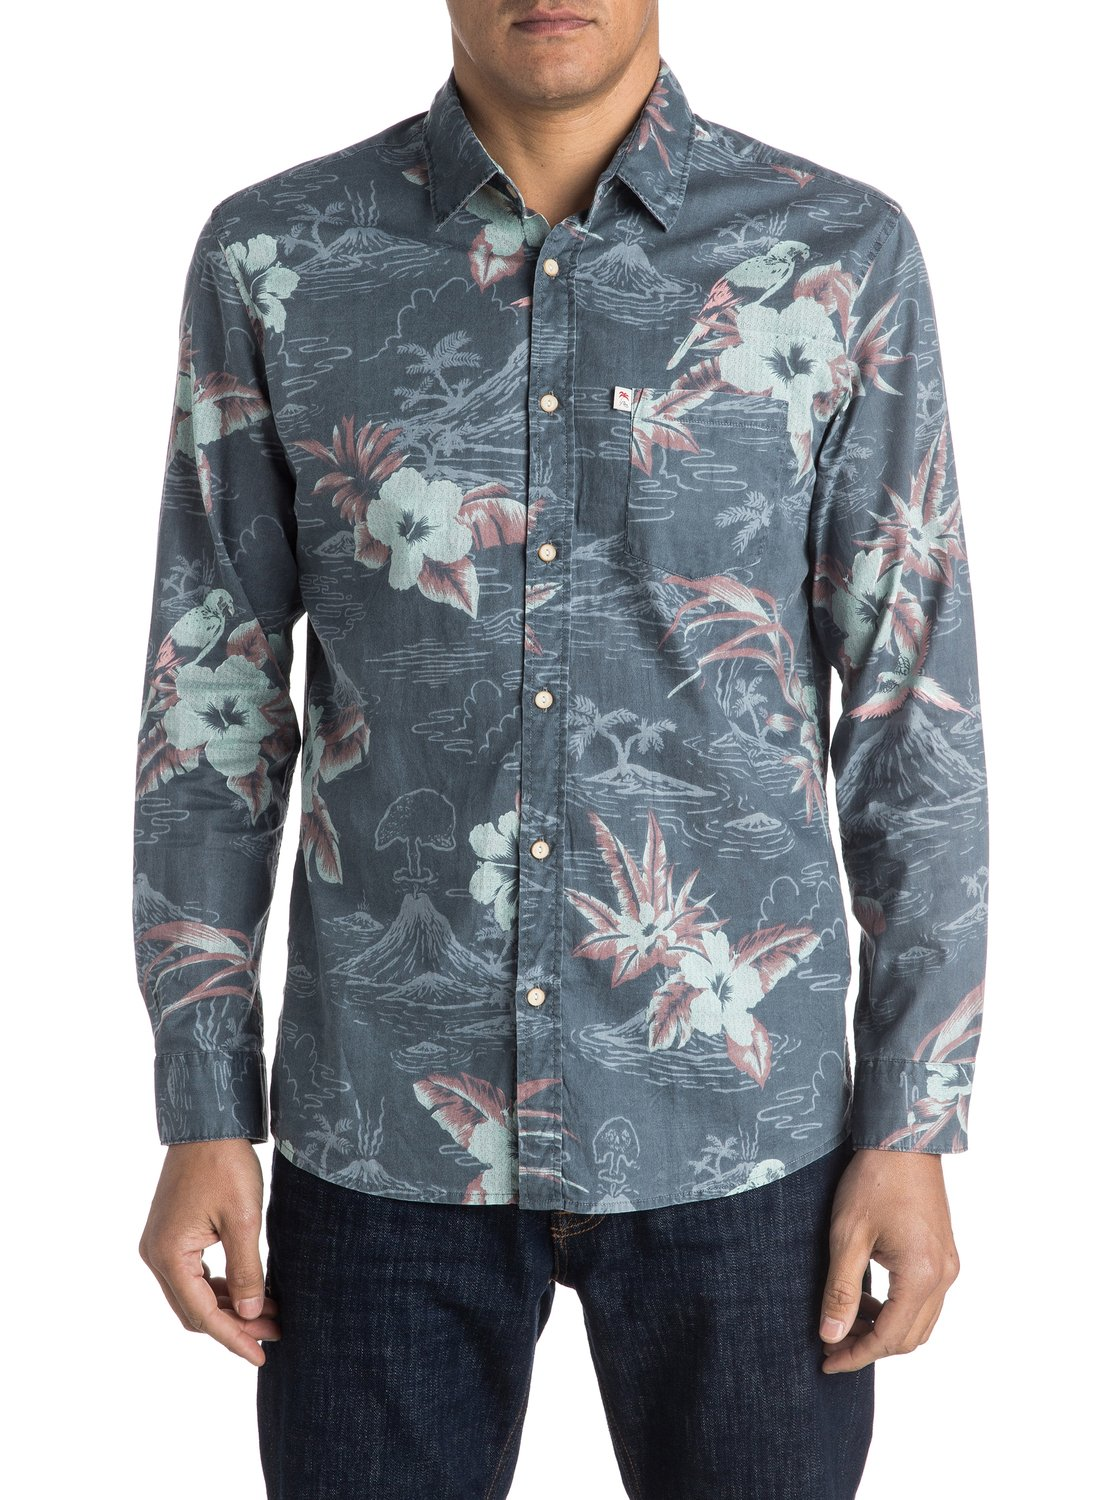 Quiksilver-Parrot-Jungle-Long-Sleeve-Shirt-Camisa-De-Manga-Larga-Hombre